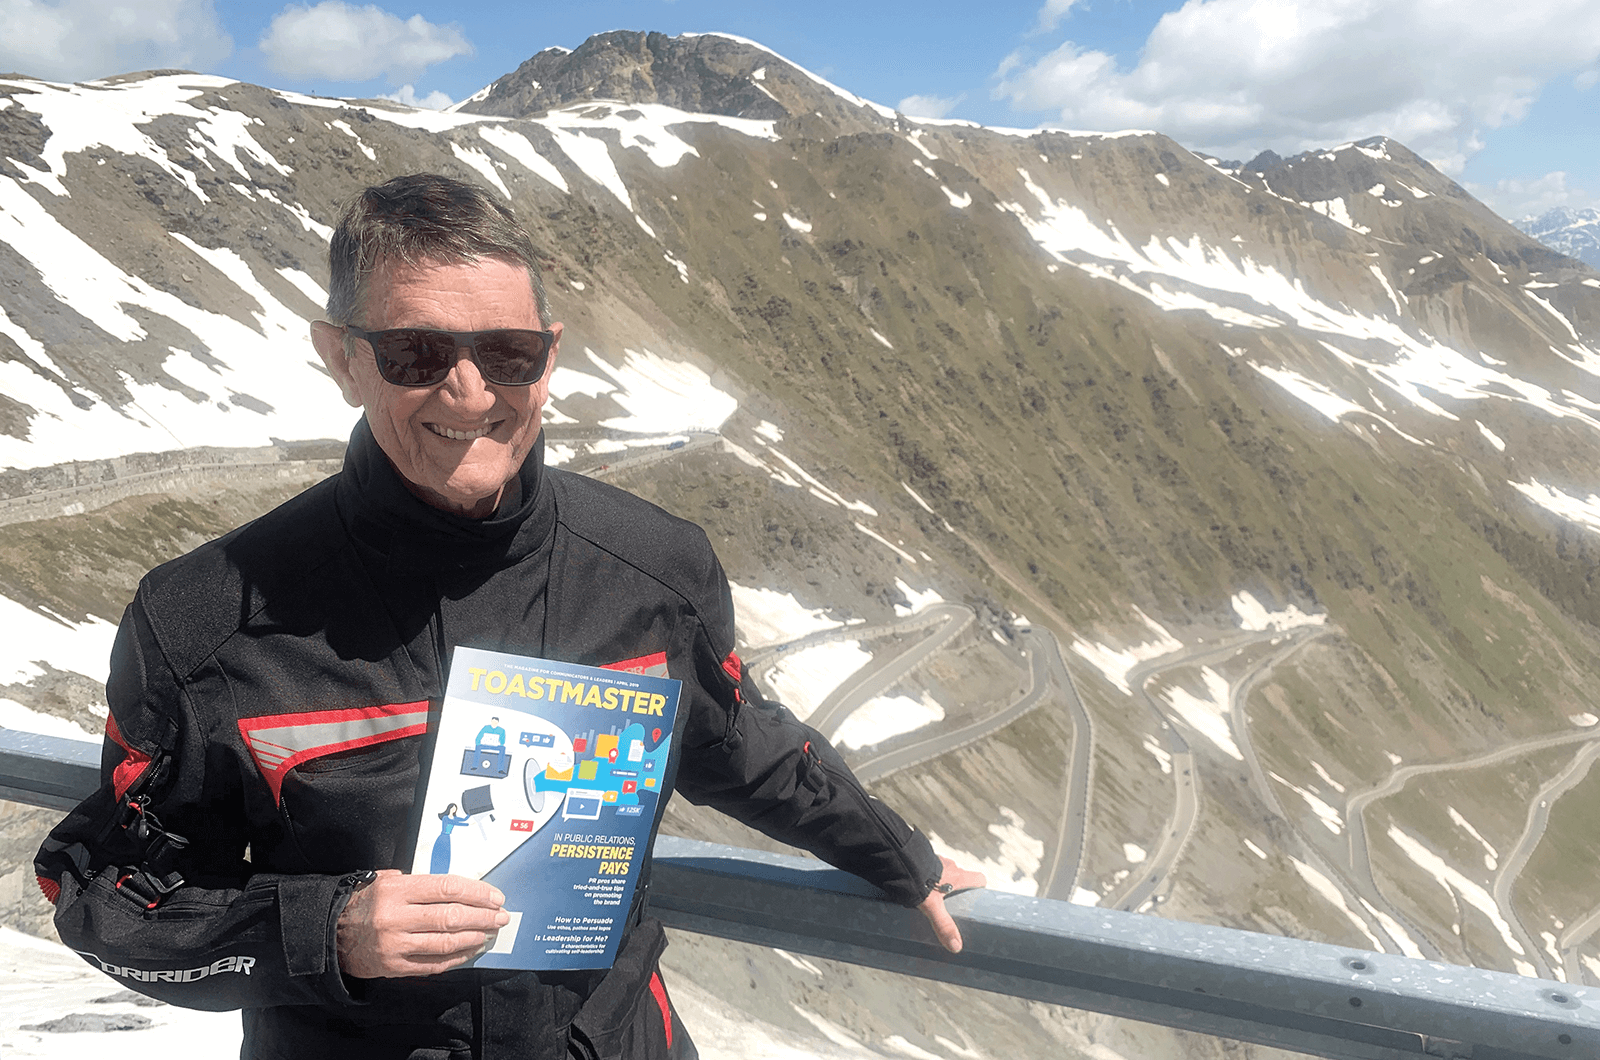 Steve Vella of Perth, Australia, pauses on Stelvio Pass in the Italian Alps after completing a portion of his motorcycle tour of Italy.